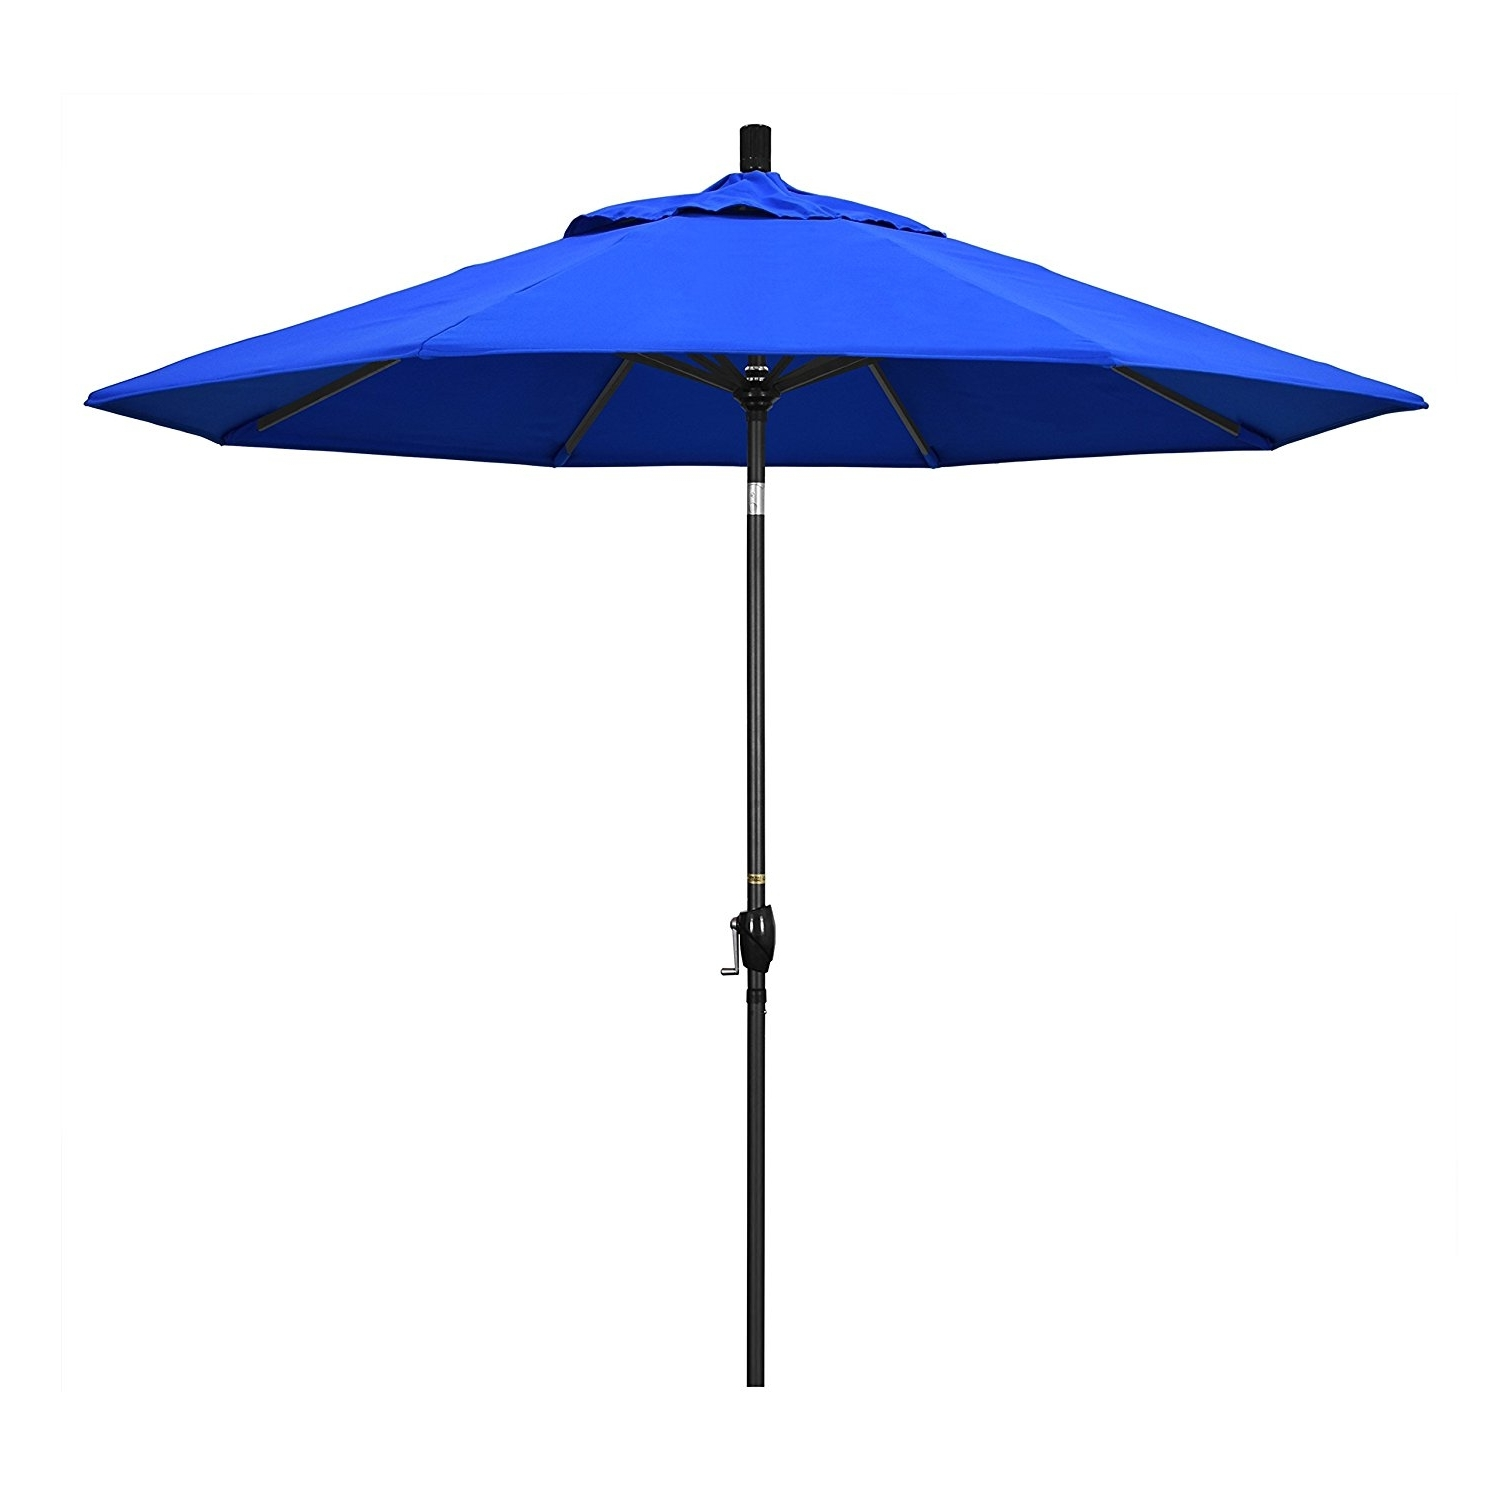 Fashionable Patio Umbrellas With White Pole Throughout Best Sunbrella Umbrellas (View 9 of 20)